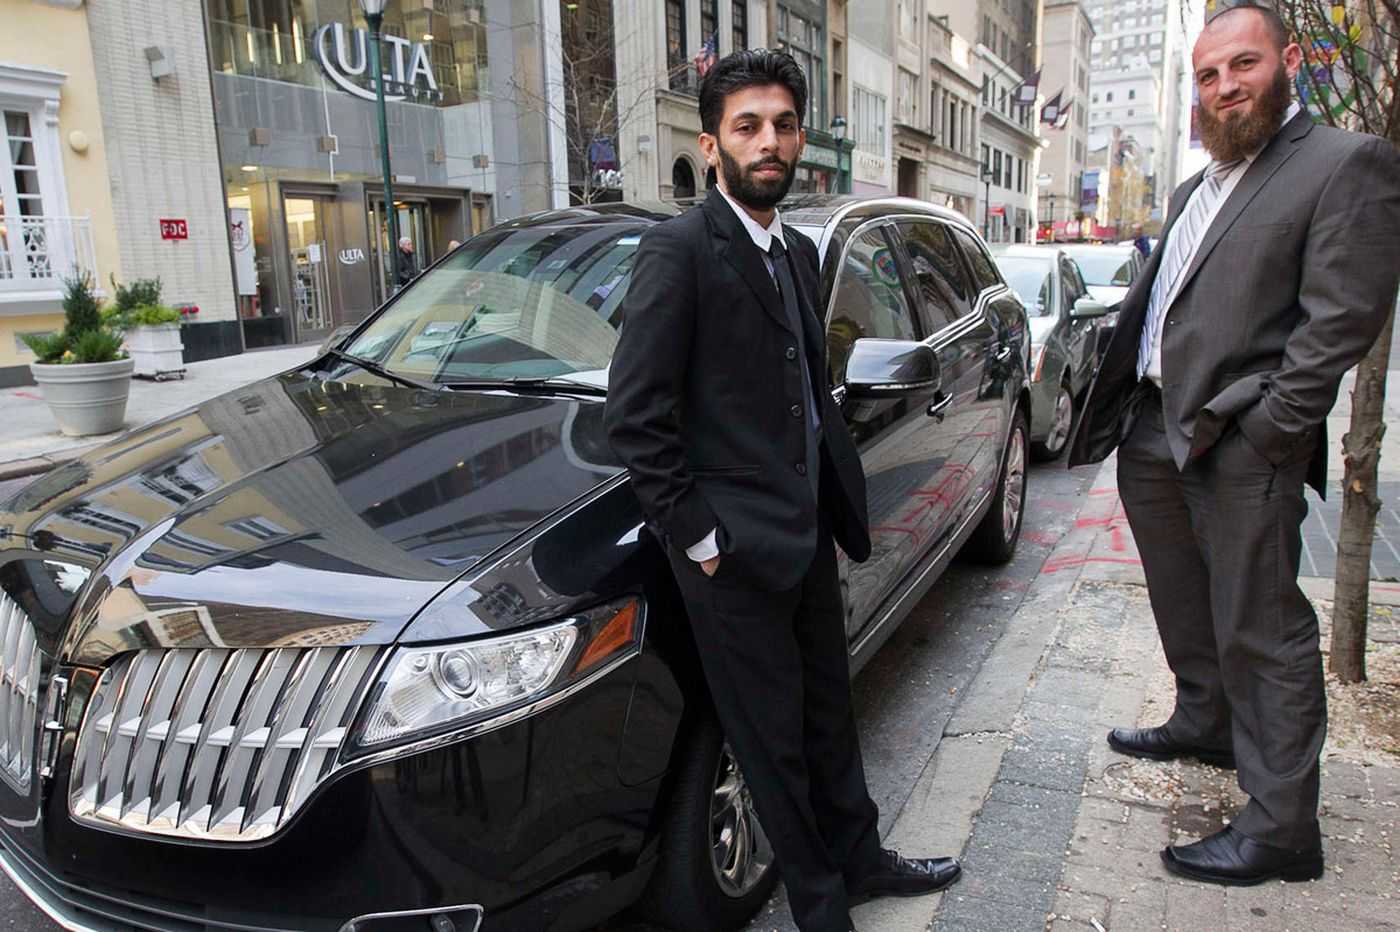 UberBlack drivers say business is being cannibalized